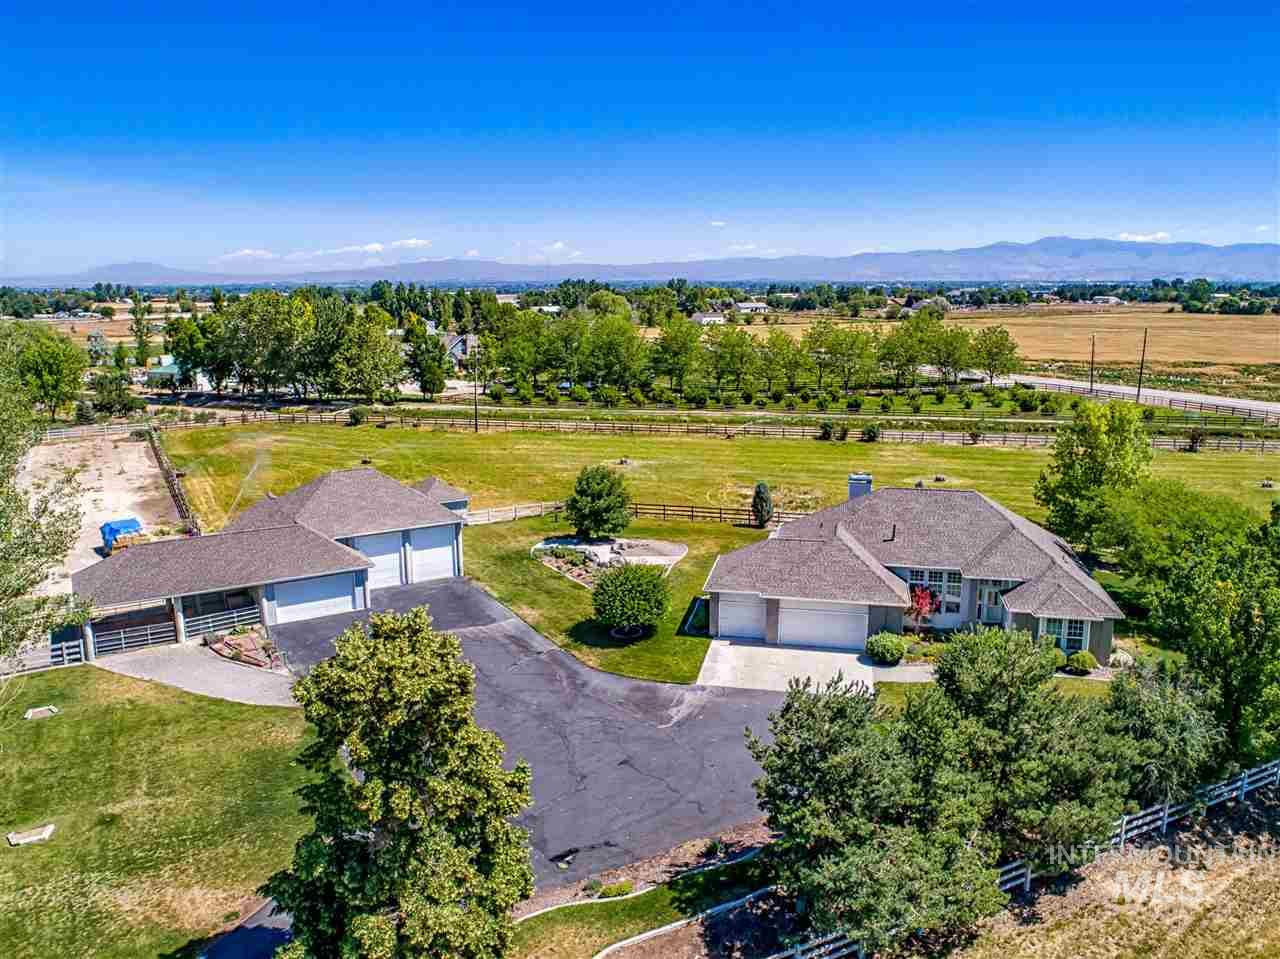 Own your own private Idaho! Views, space, privacy, beauty, fresh air, shop, RV, prime land. Superior quality custom home on 5 acres. 4 pressurized irrigated acres. Open & spacious-great for entertaining. 7 car/vehicle stalls total. 3 car attached garage + additional 2 car & 2 RV + 14X24 Office w/ shower. Hardwoods, fireplace, open kitchen design w/double ovens. Beautiful East facing backyard.  Don't miss the 3D floor plan link.